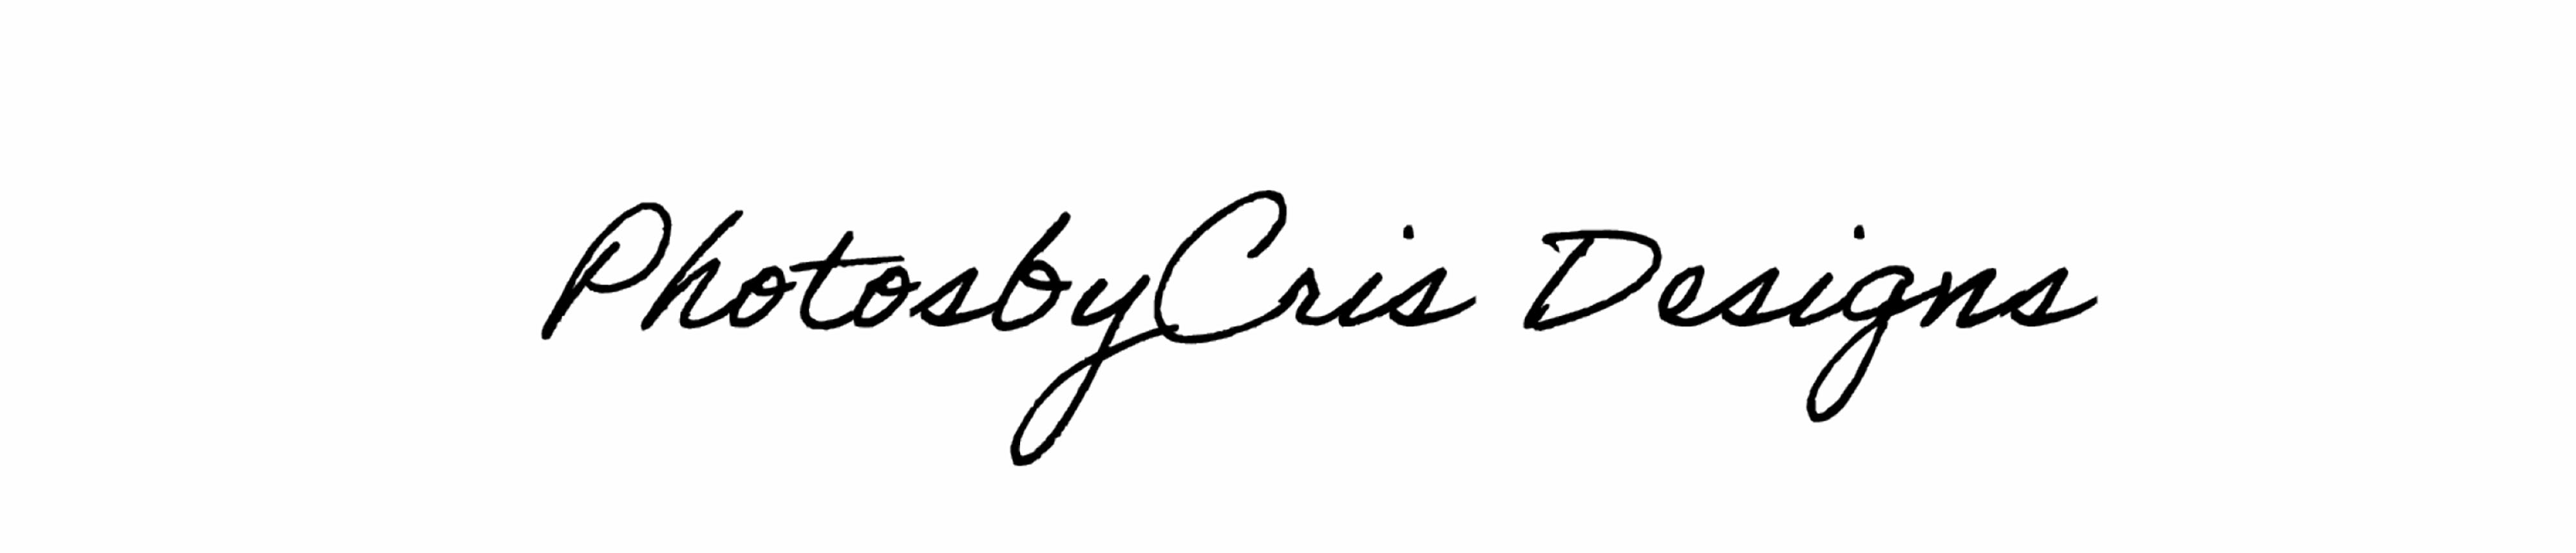 PhotosbyCris designs's Signature